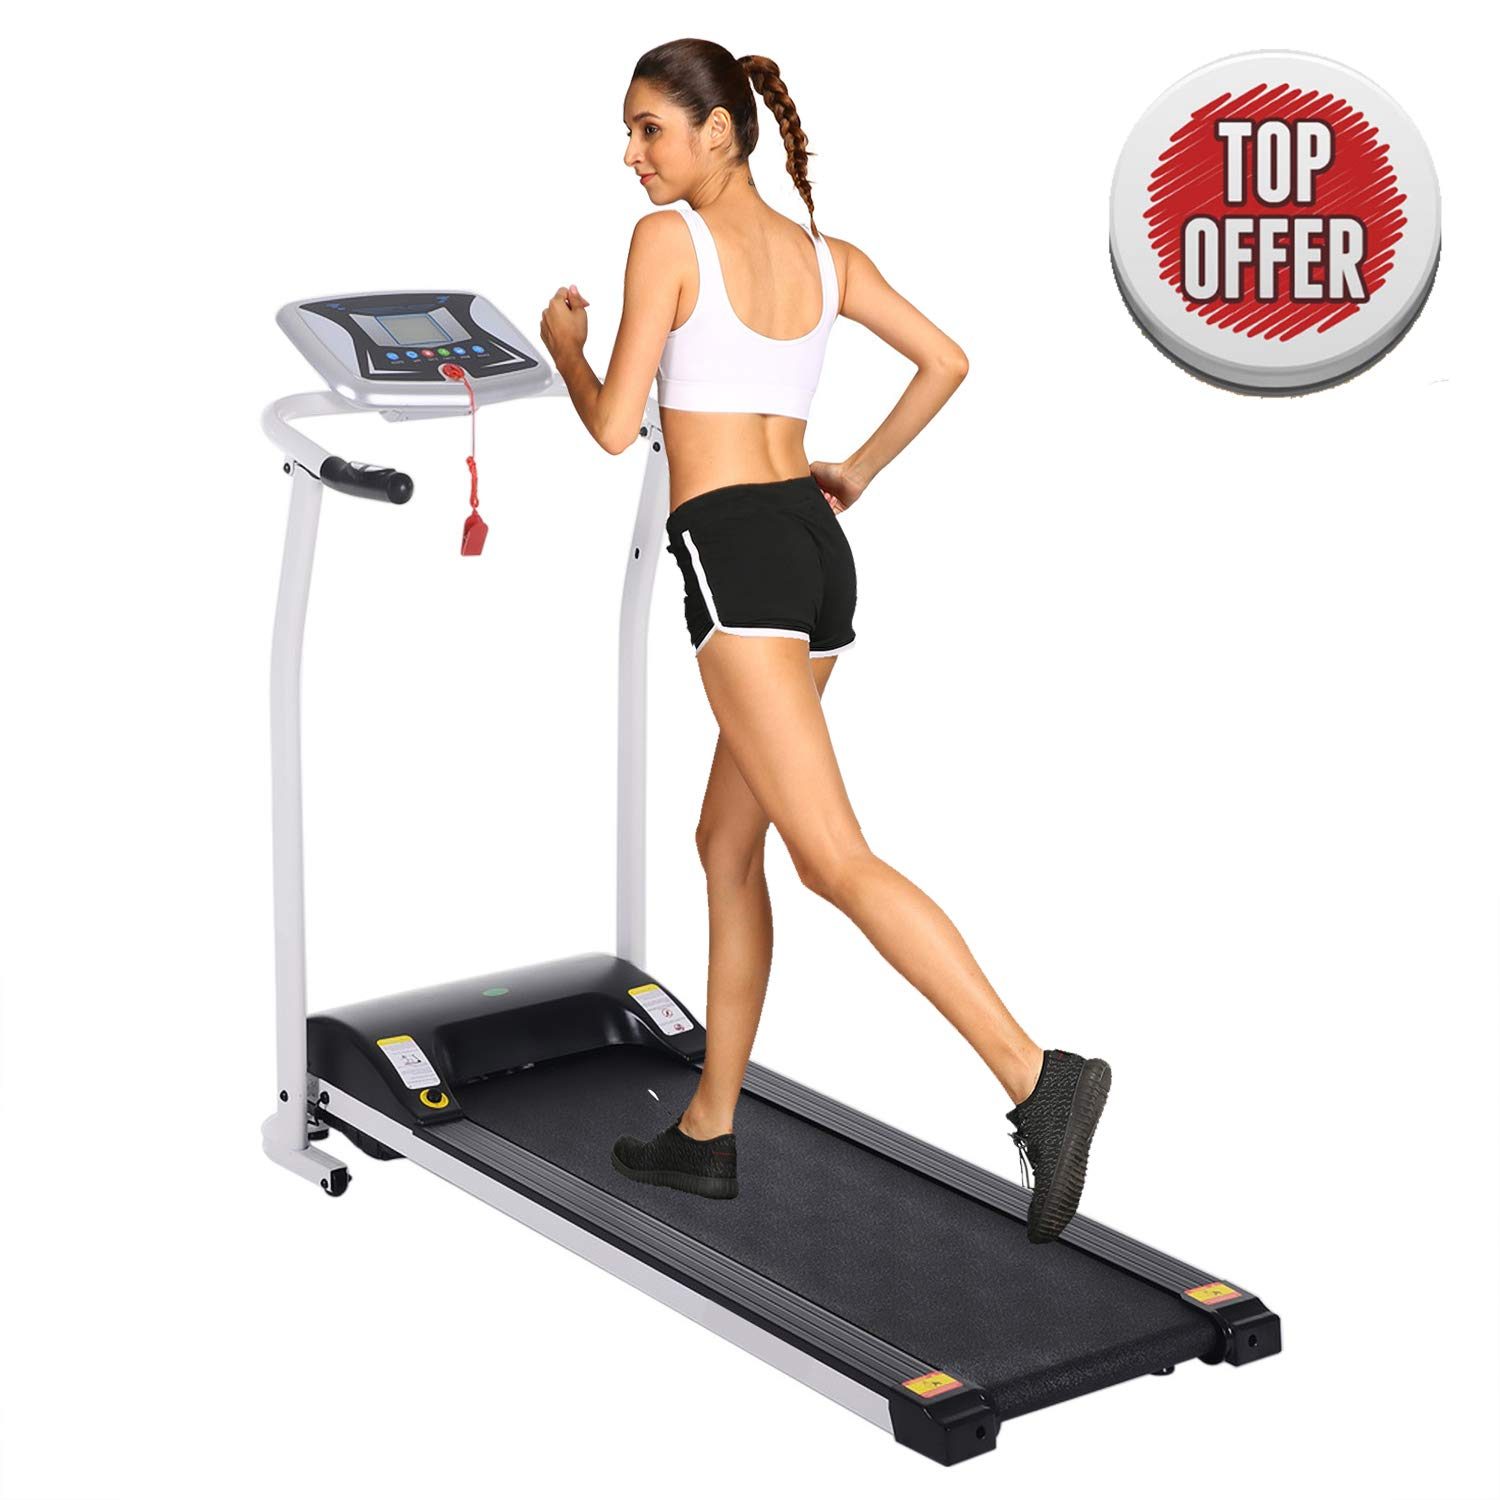 Folding Electric Treadmill Running Machine Power Motorized for Home Gym Exercise Walking Fitness (1.5 HP - White - Not Incline.) by ncient